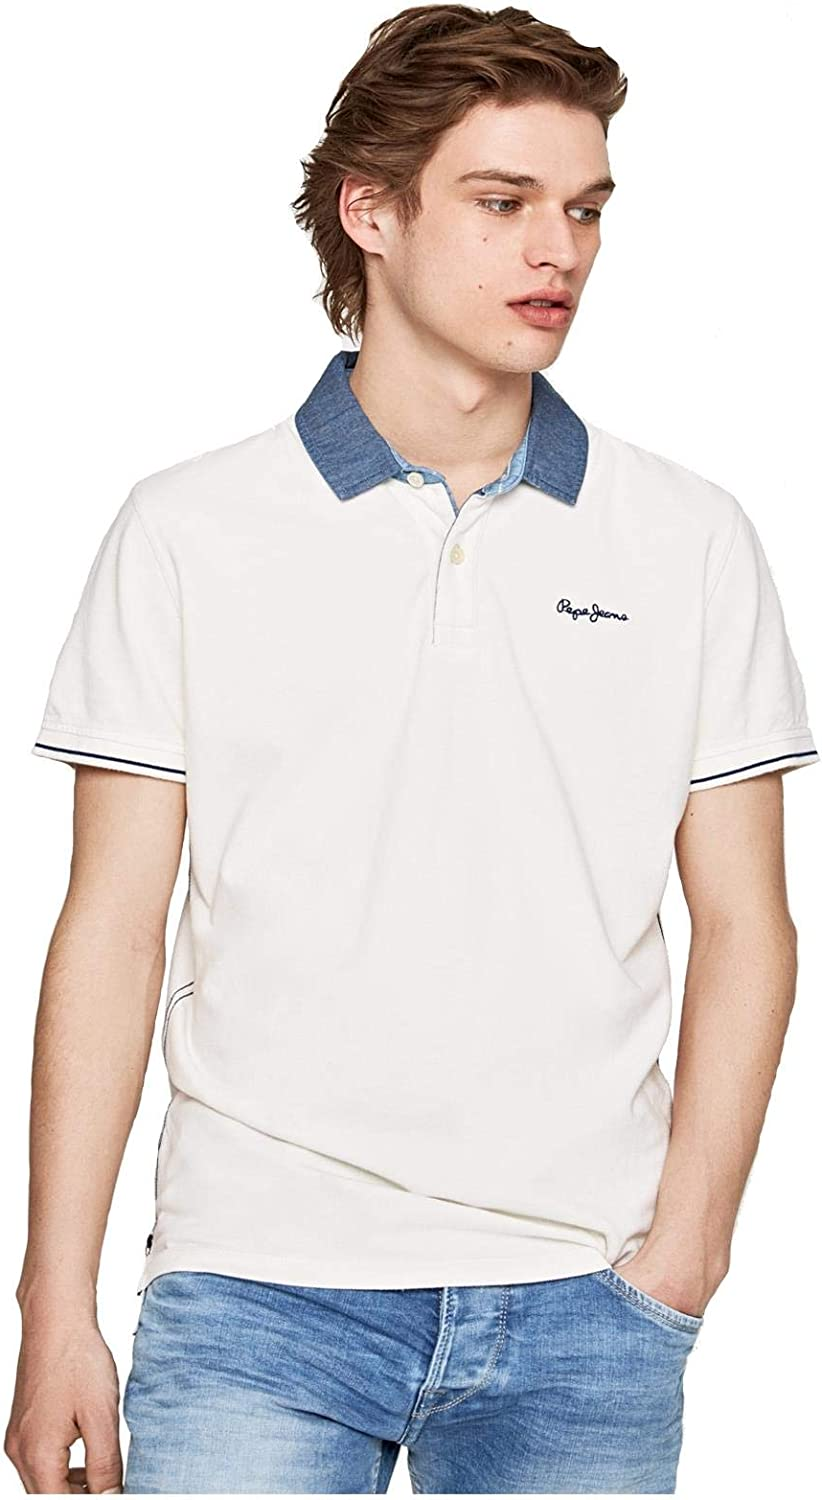 Pepe Jeans - Polo Morris Hombre Color: 933 Grey Marl Talla: Large ...